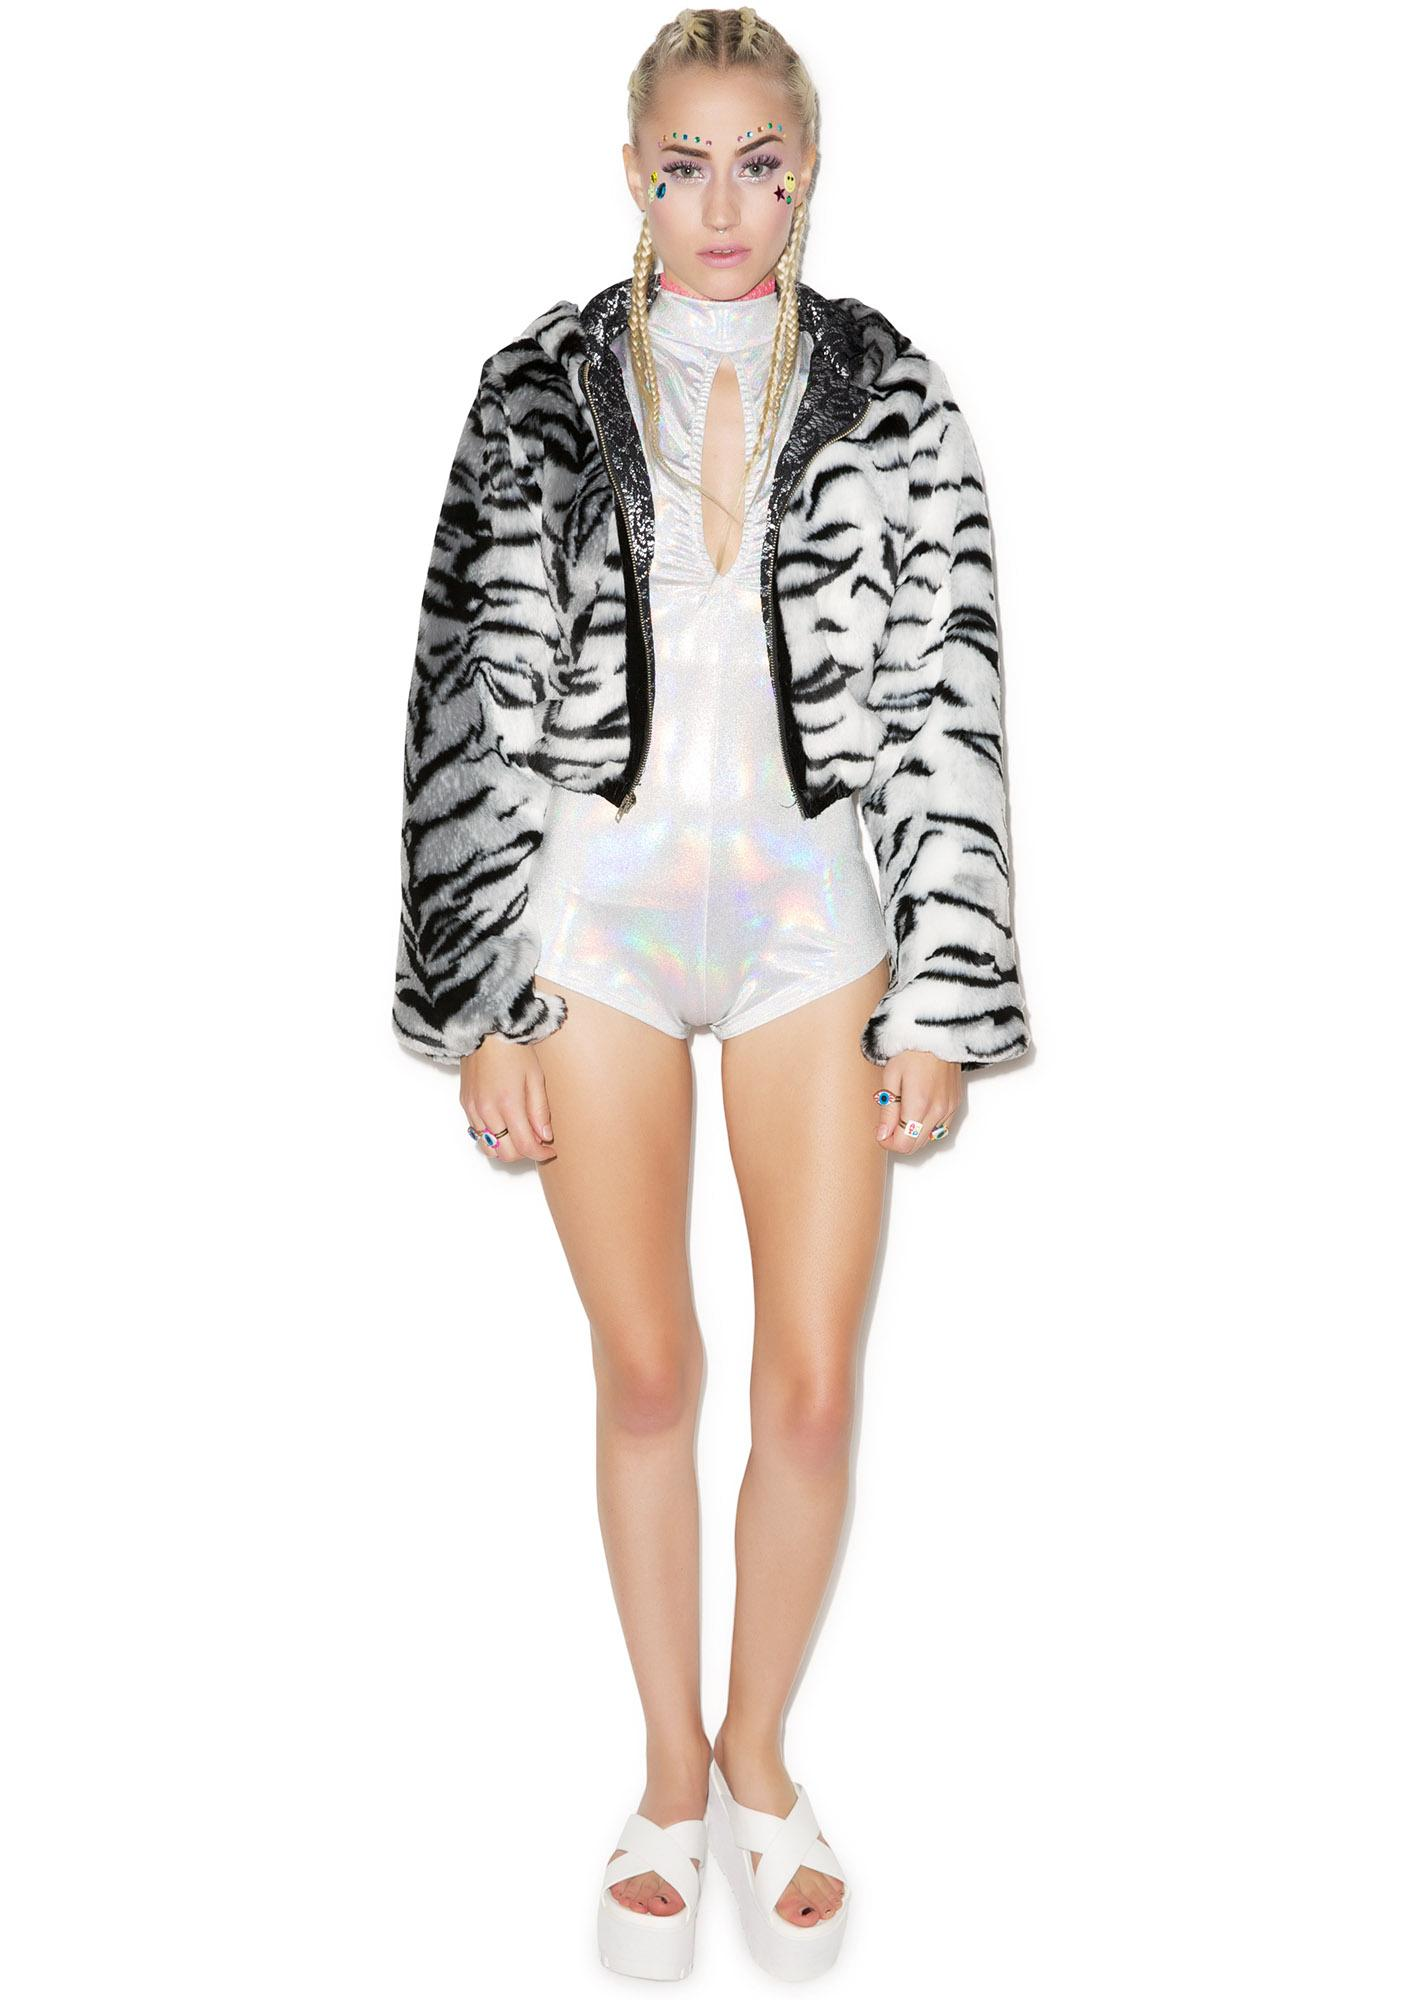 J Valentine White Tiger Jacket